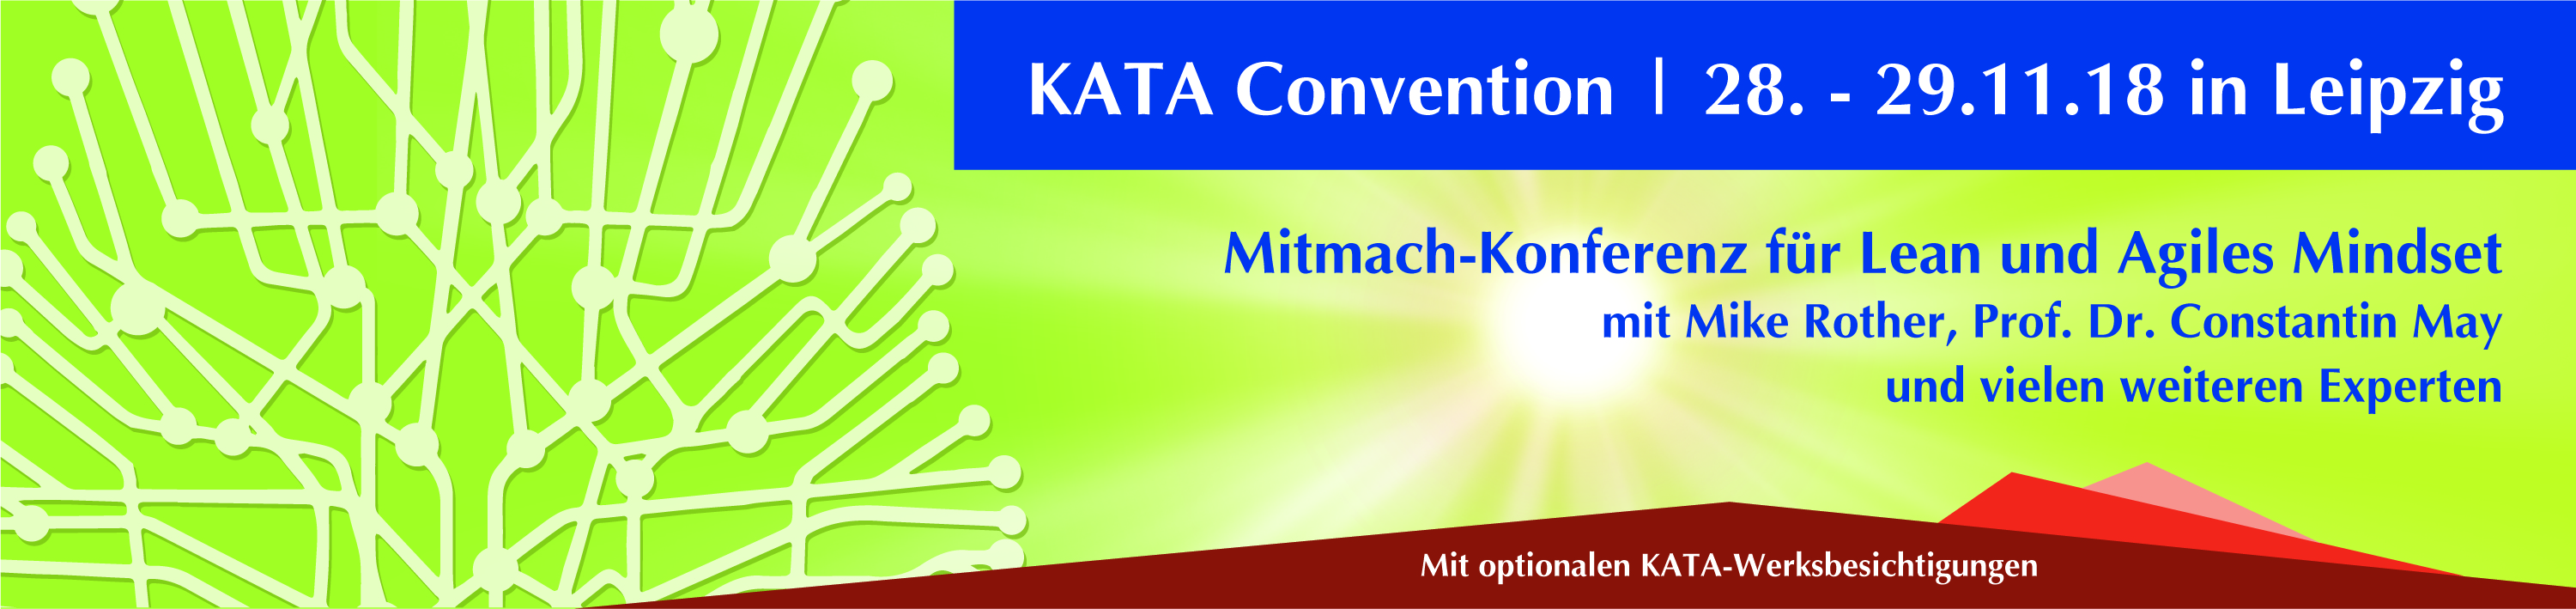 KATA Convention